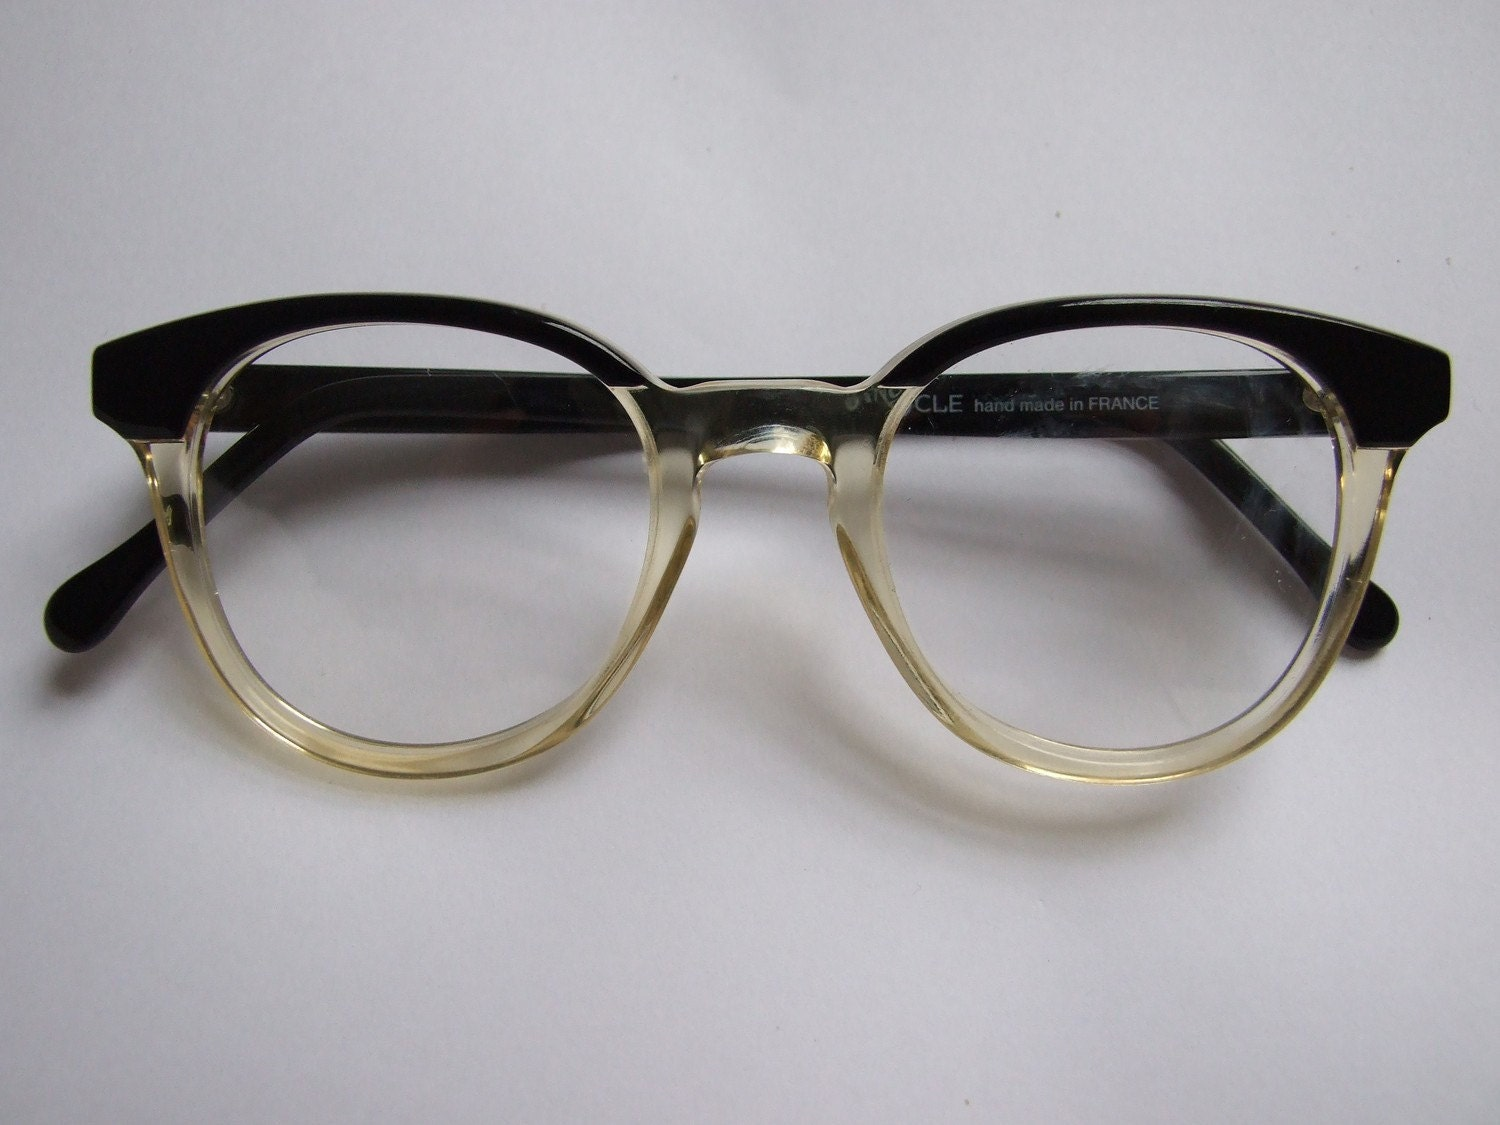 Vintage Eyeglass Frames Etsy : Binocle Two-Tone Vintage Glasses Frames by empireofdire on ...